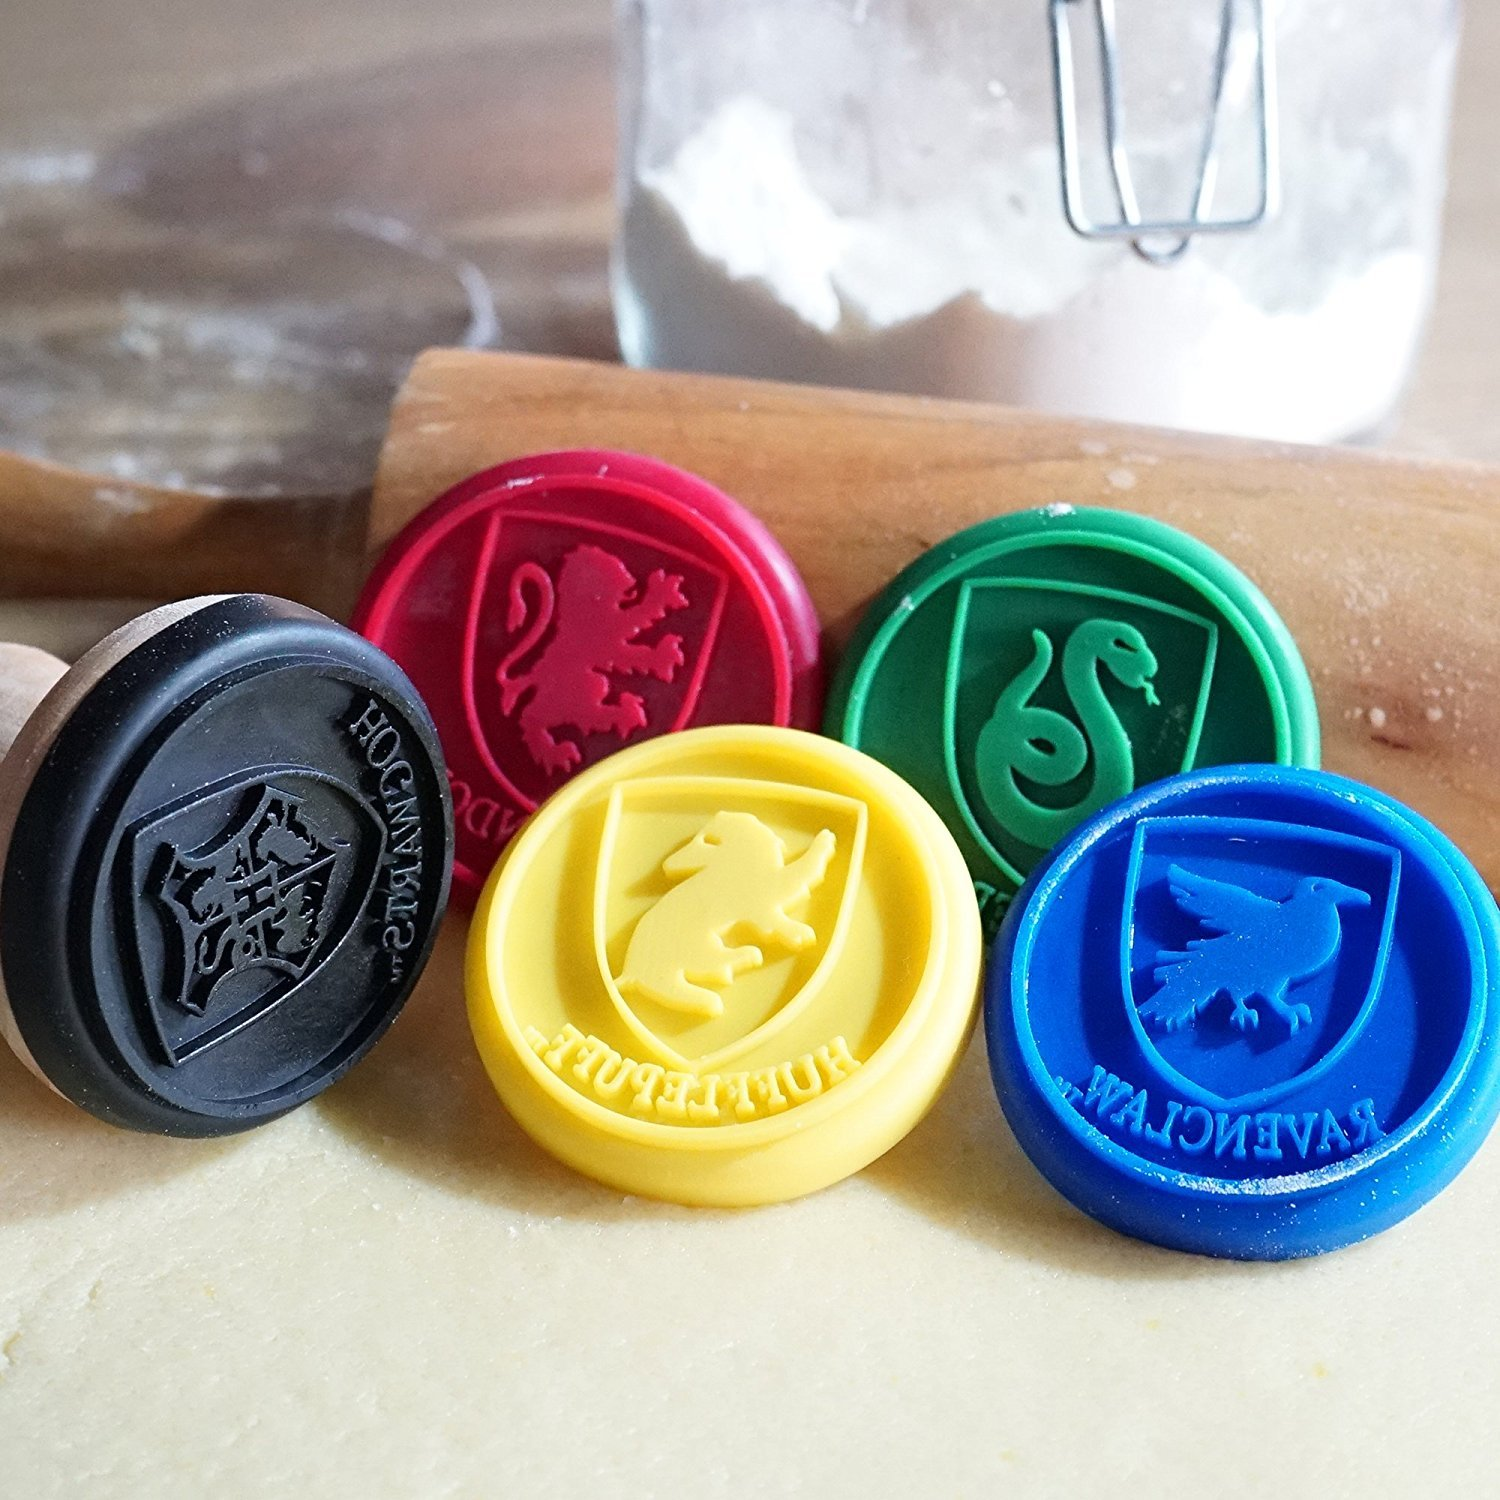 Harry Potter Cookie Stamps ● Set of 5 ● Official License by Cinereplicas